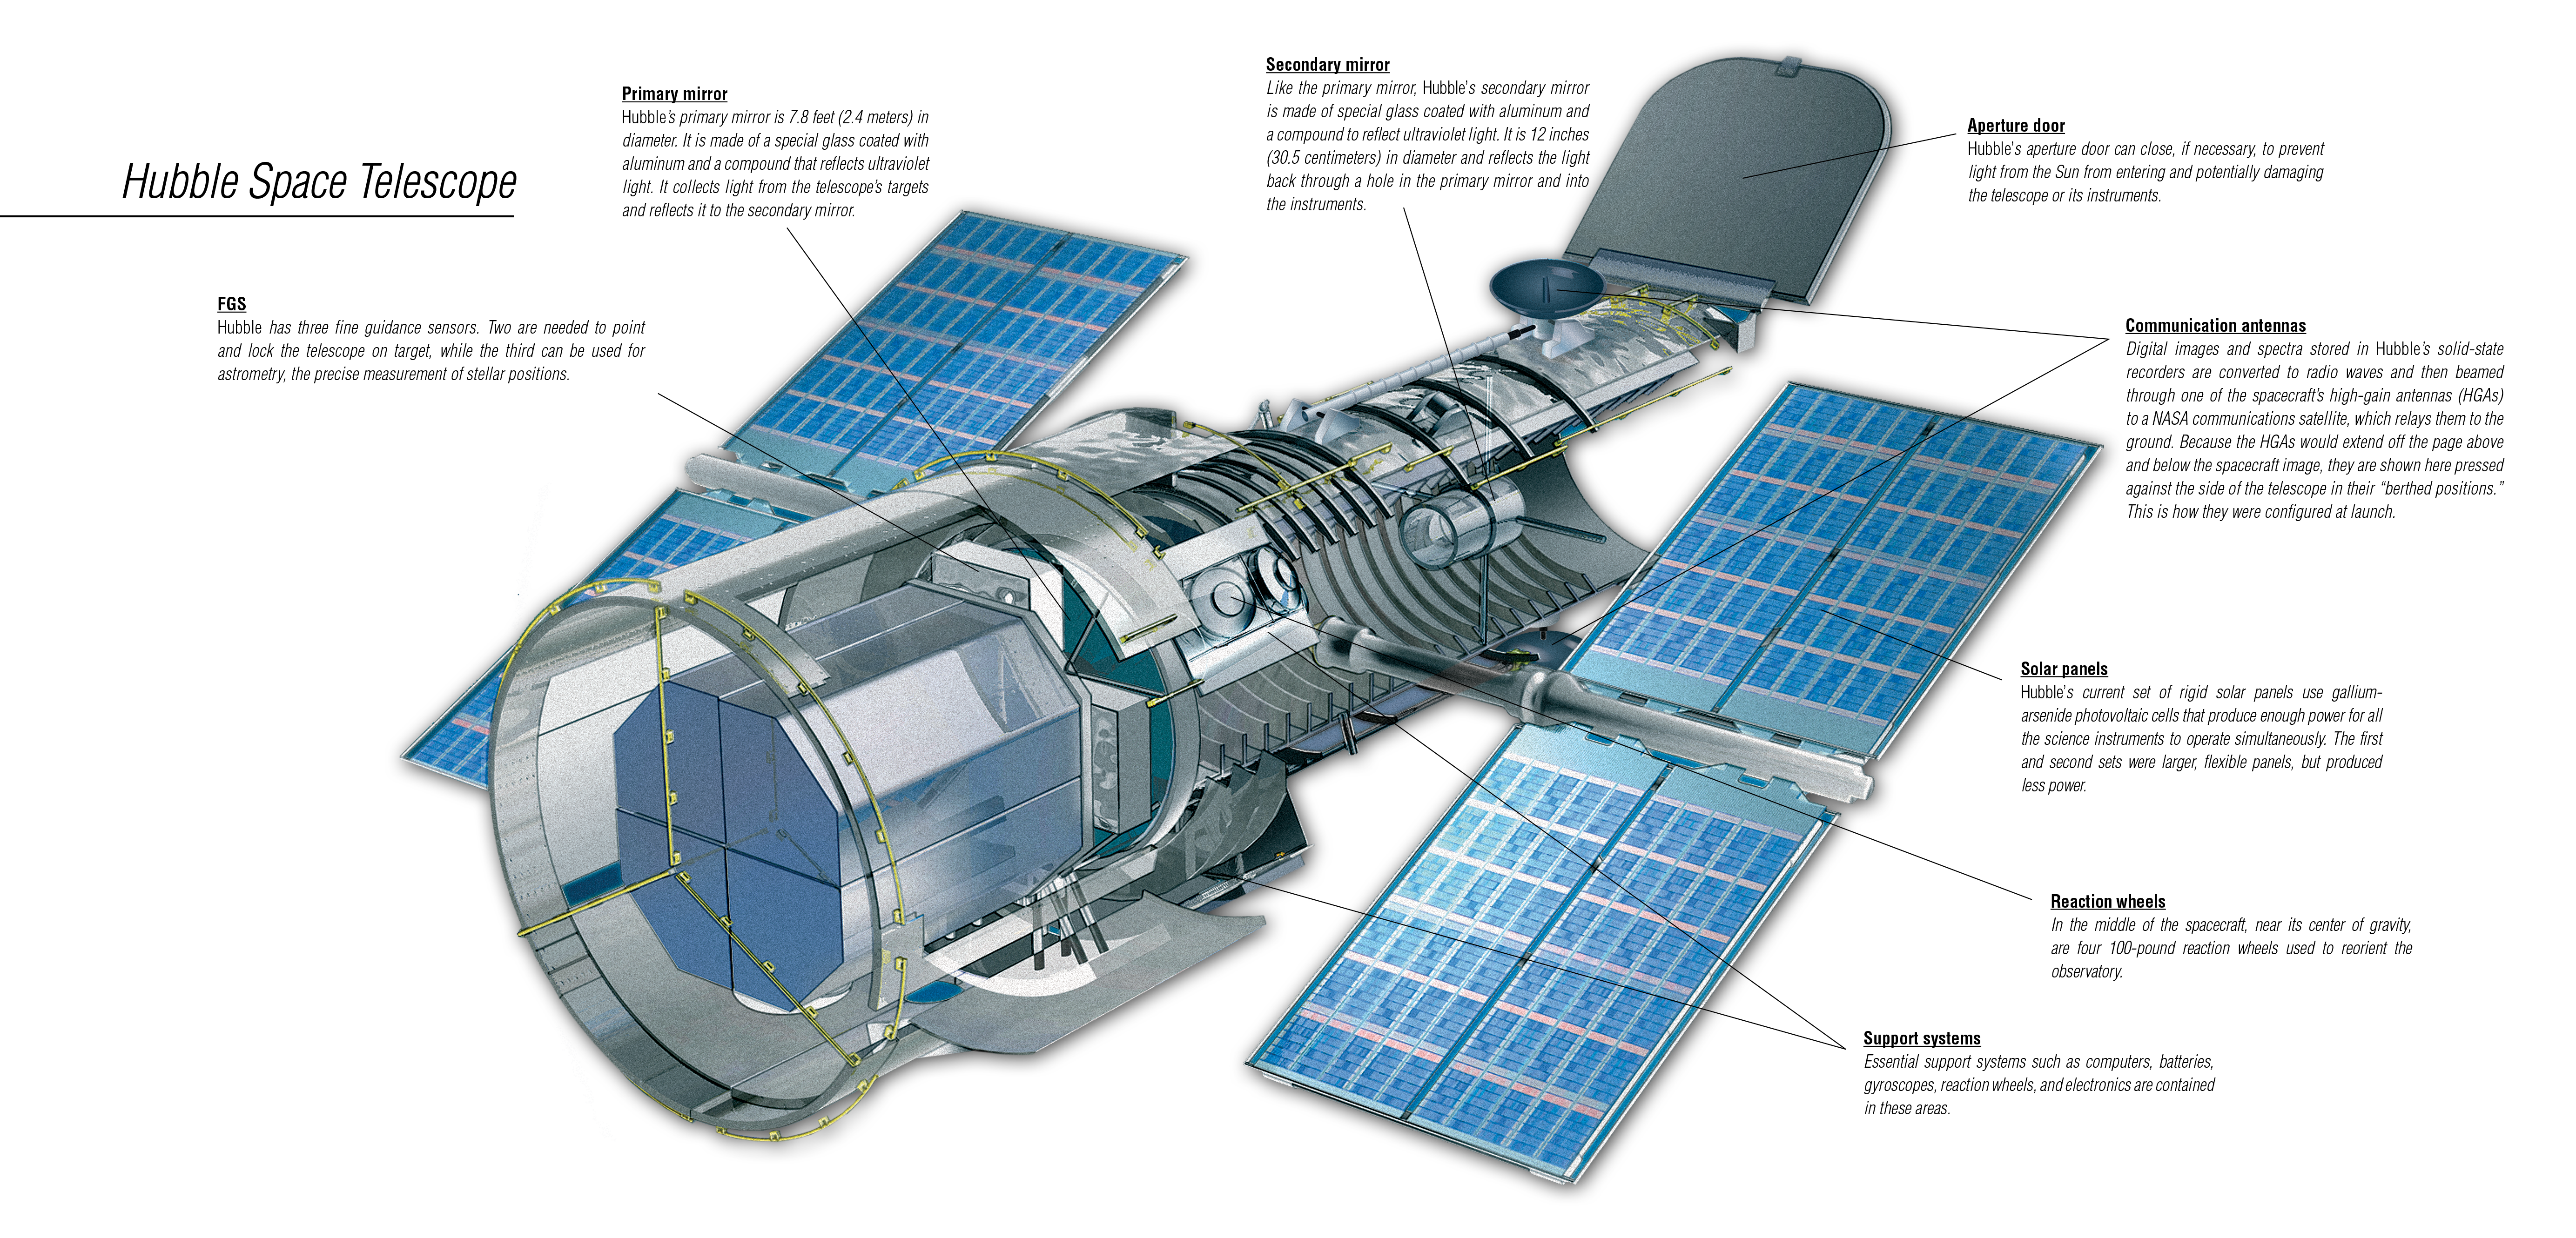 Observatory nasa cutaway diagram. Space satellite png clipart freeuse download